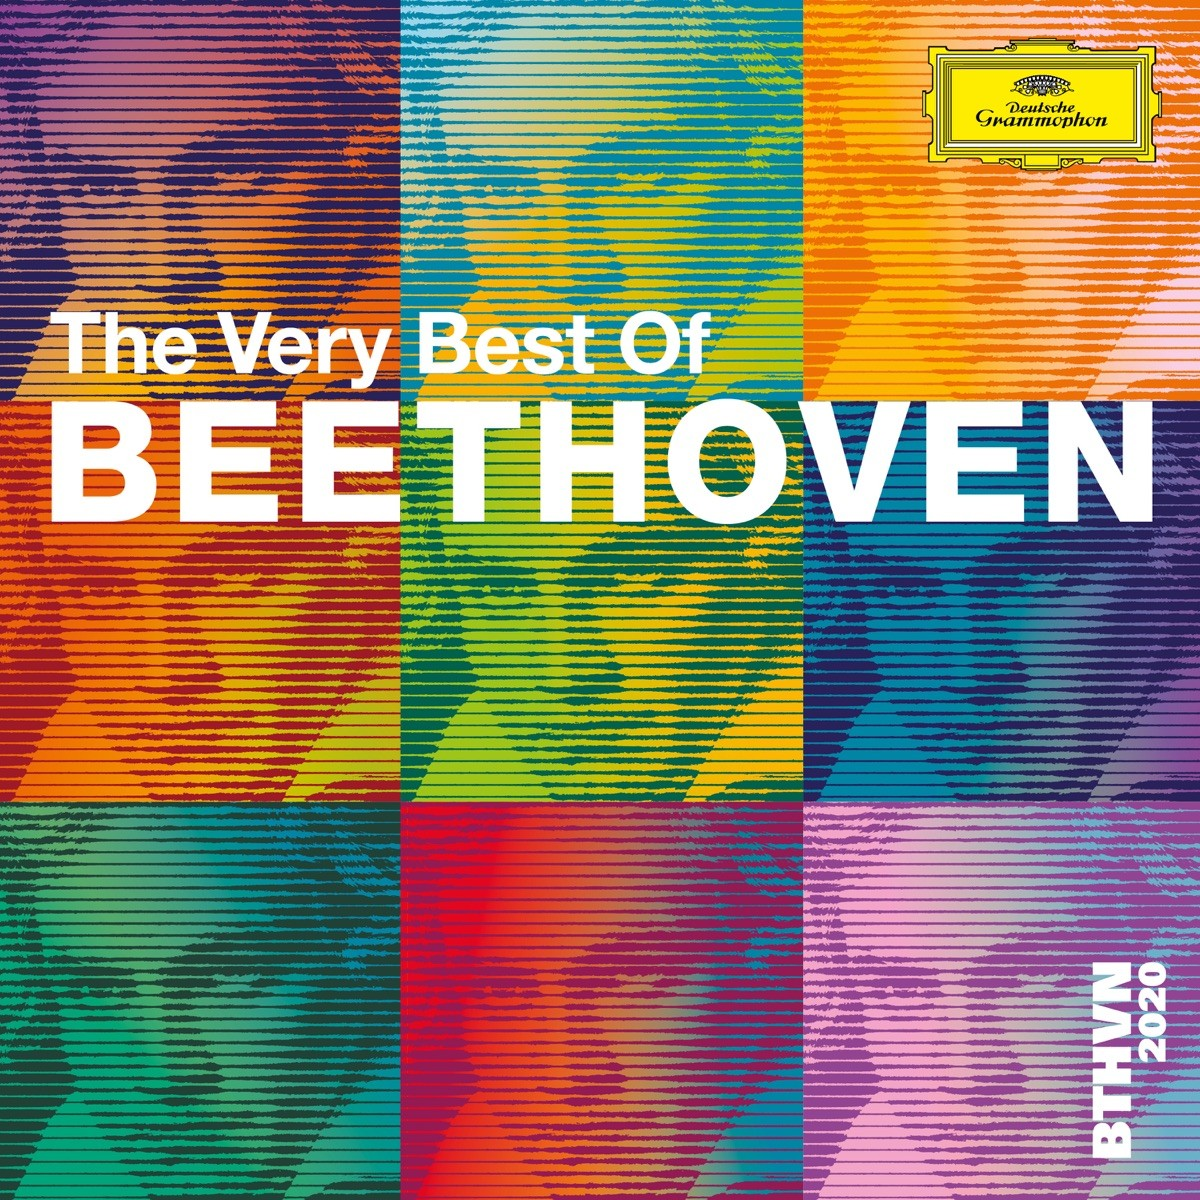 Beethoven - The Very Best Of CD - 002894837841